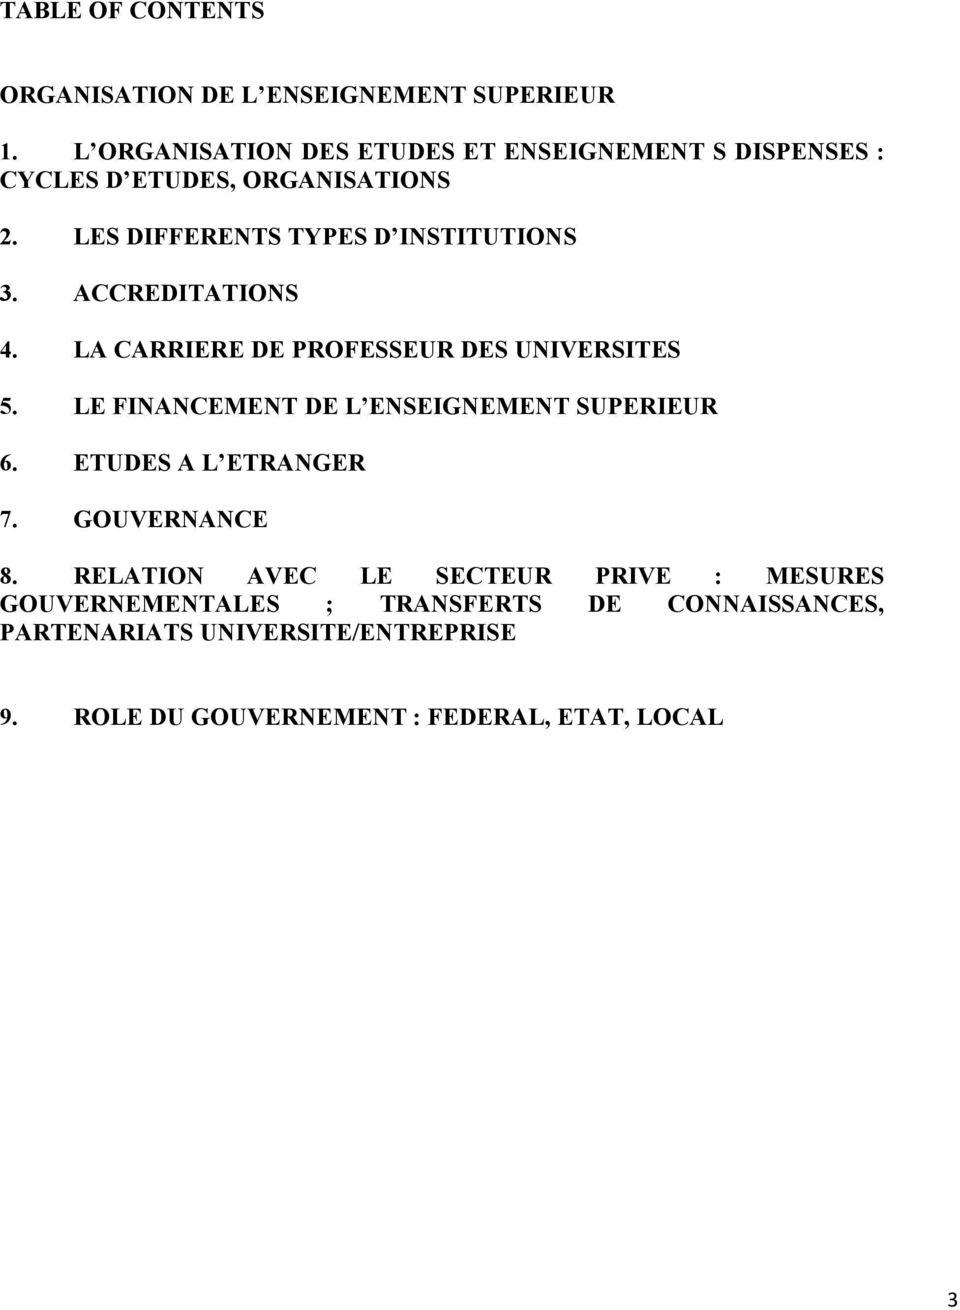 ACCREDITATIONS 4. LA CARRIERE DE PROFESSEUR DES UNIVERSITES 5. LE FINANCEMENT DE L ENSEIGNEMENT SUPERIEUR 6.